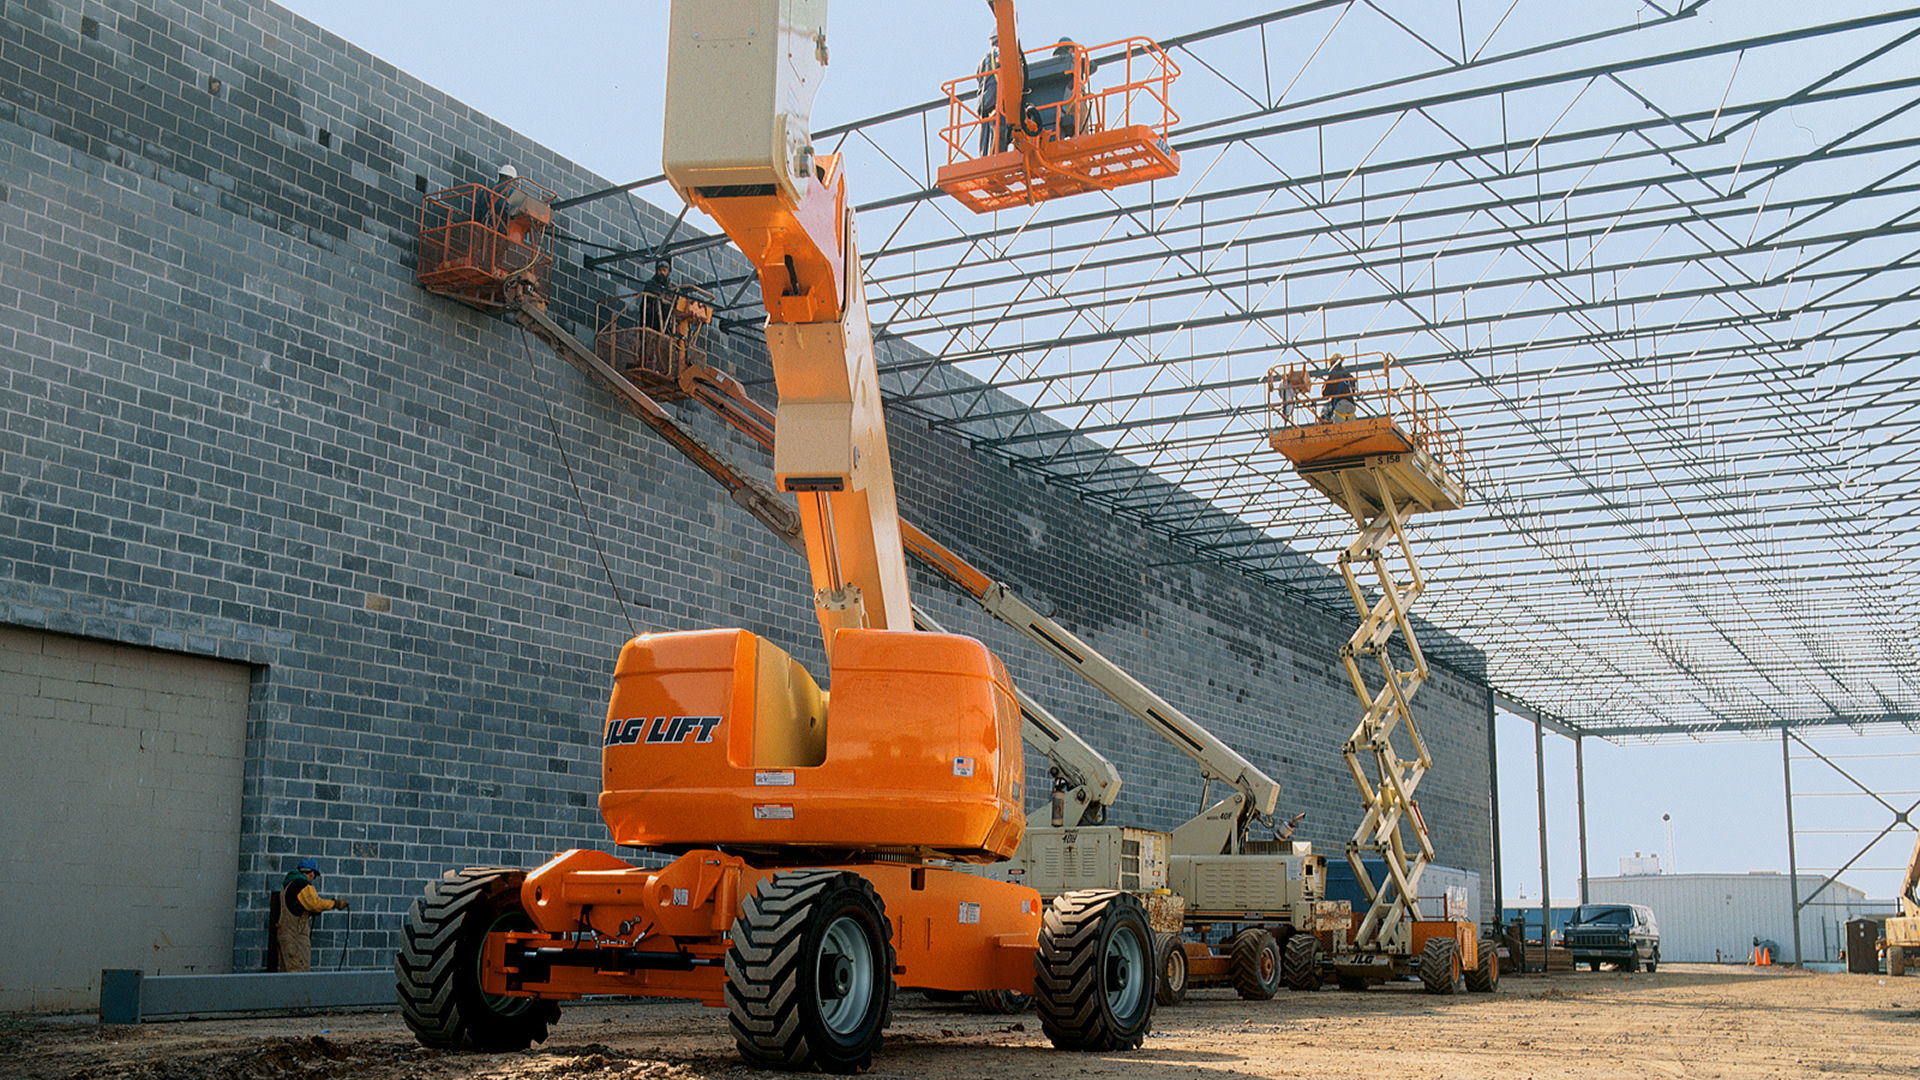 Boom lift rental, Forklift rental, Scissor lift rental Miami